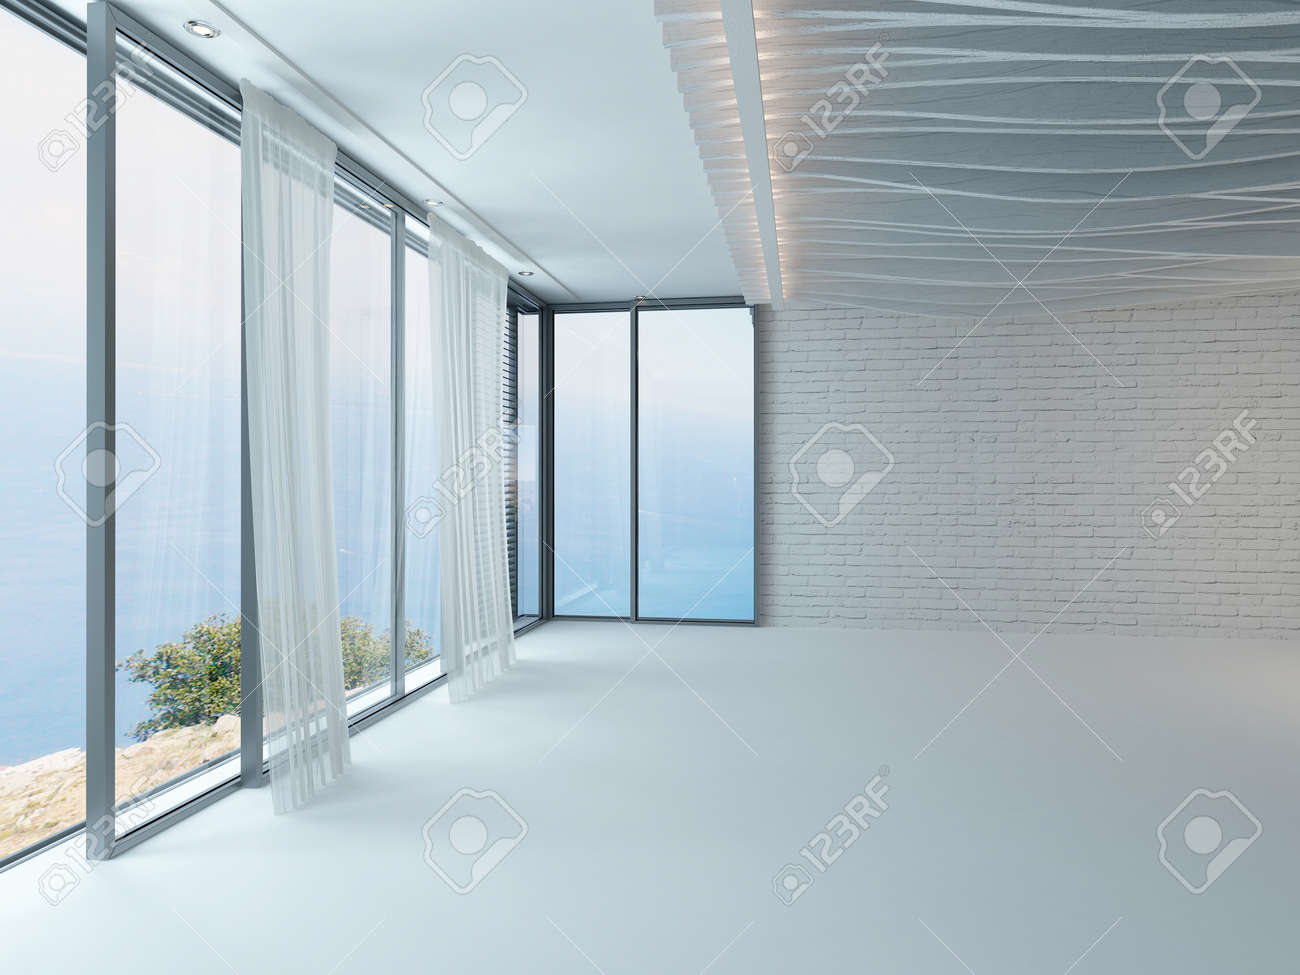 Modern White Empty Room Interior With Curtains And Floor To Ceiling Windows Stock Photo